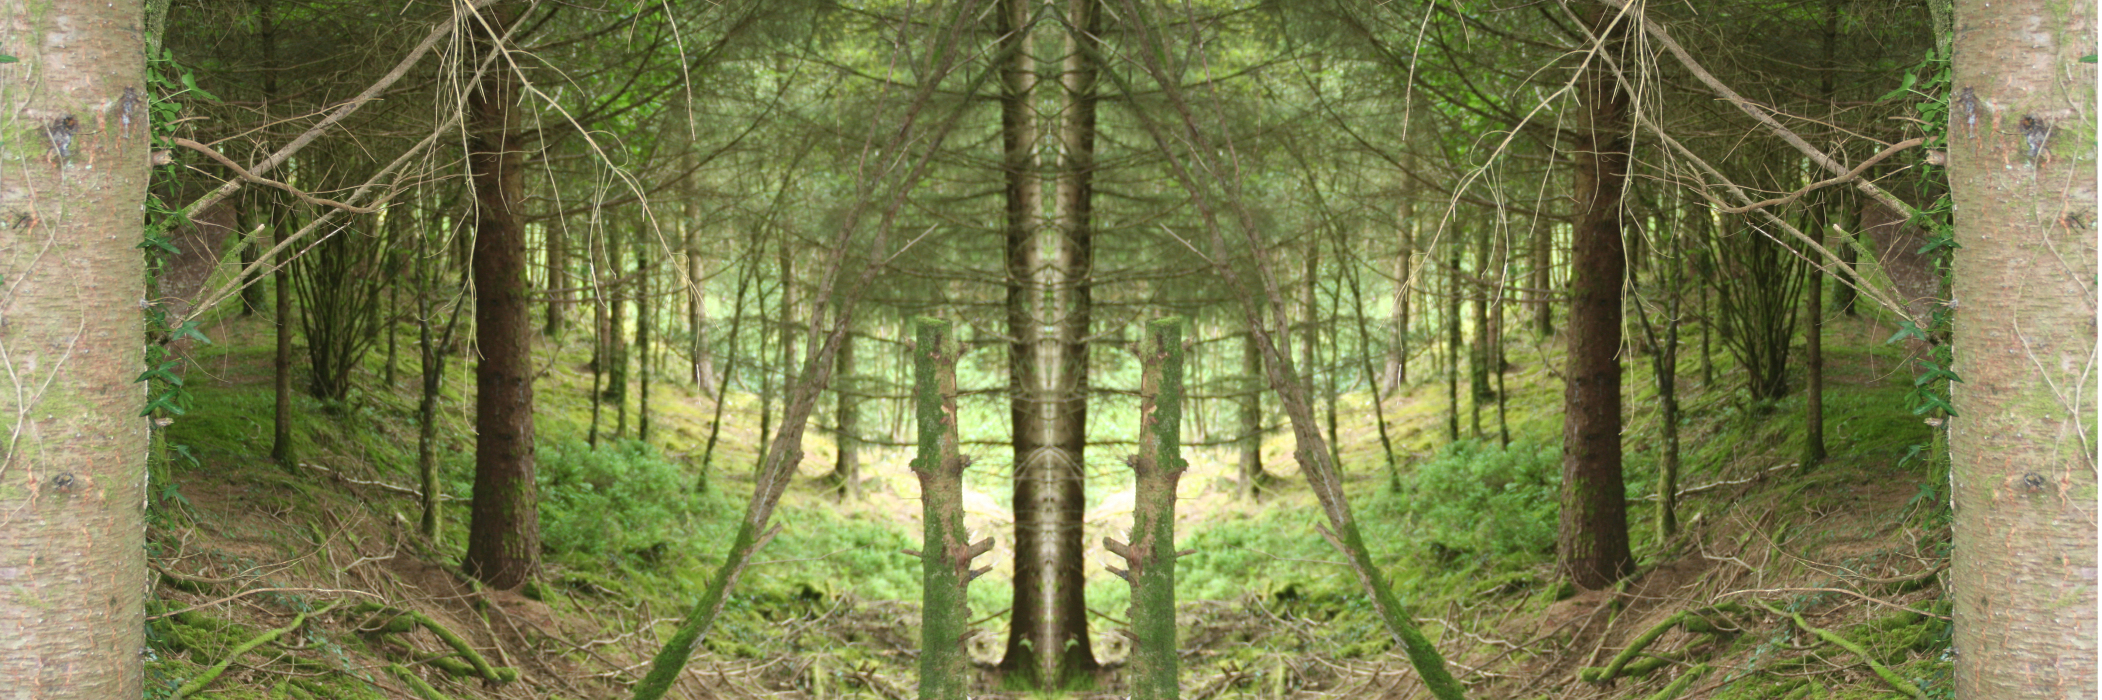 IMG_82aS63-PHOTOMONTAGE-FOREST-700H